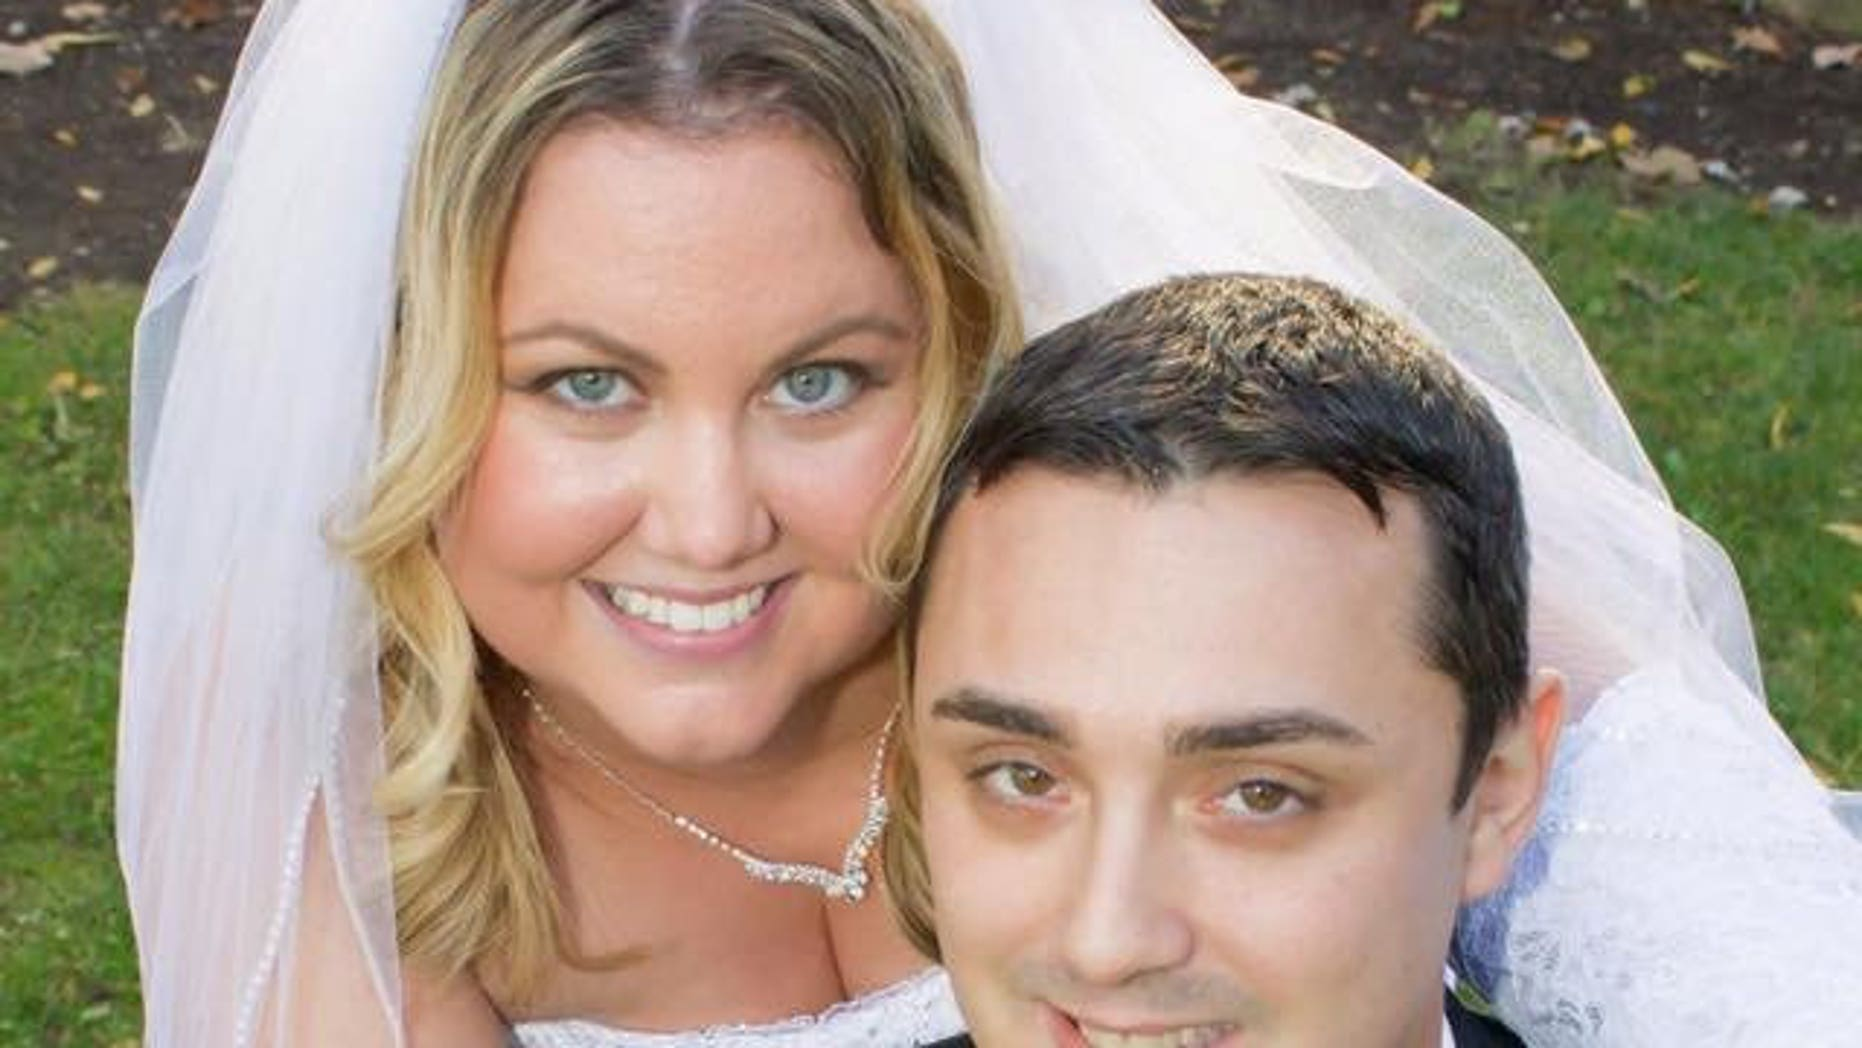 Ashley Heil, pictured with her husband Ben on their wedding day, had an armband to hide her IV drip.